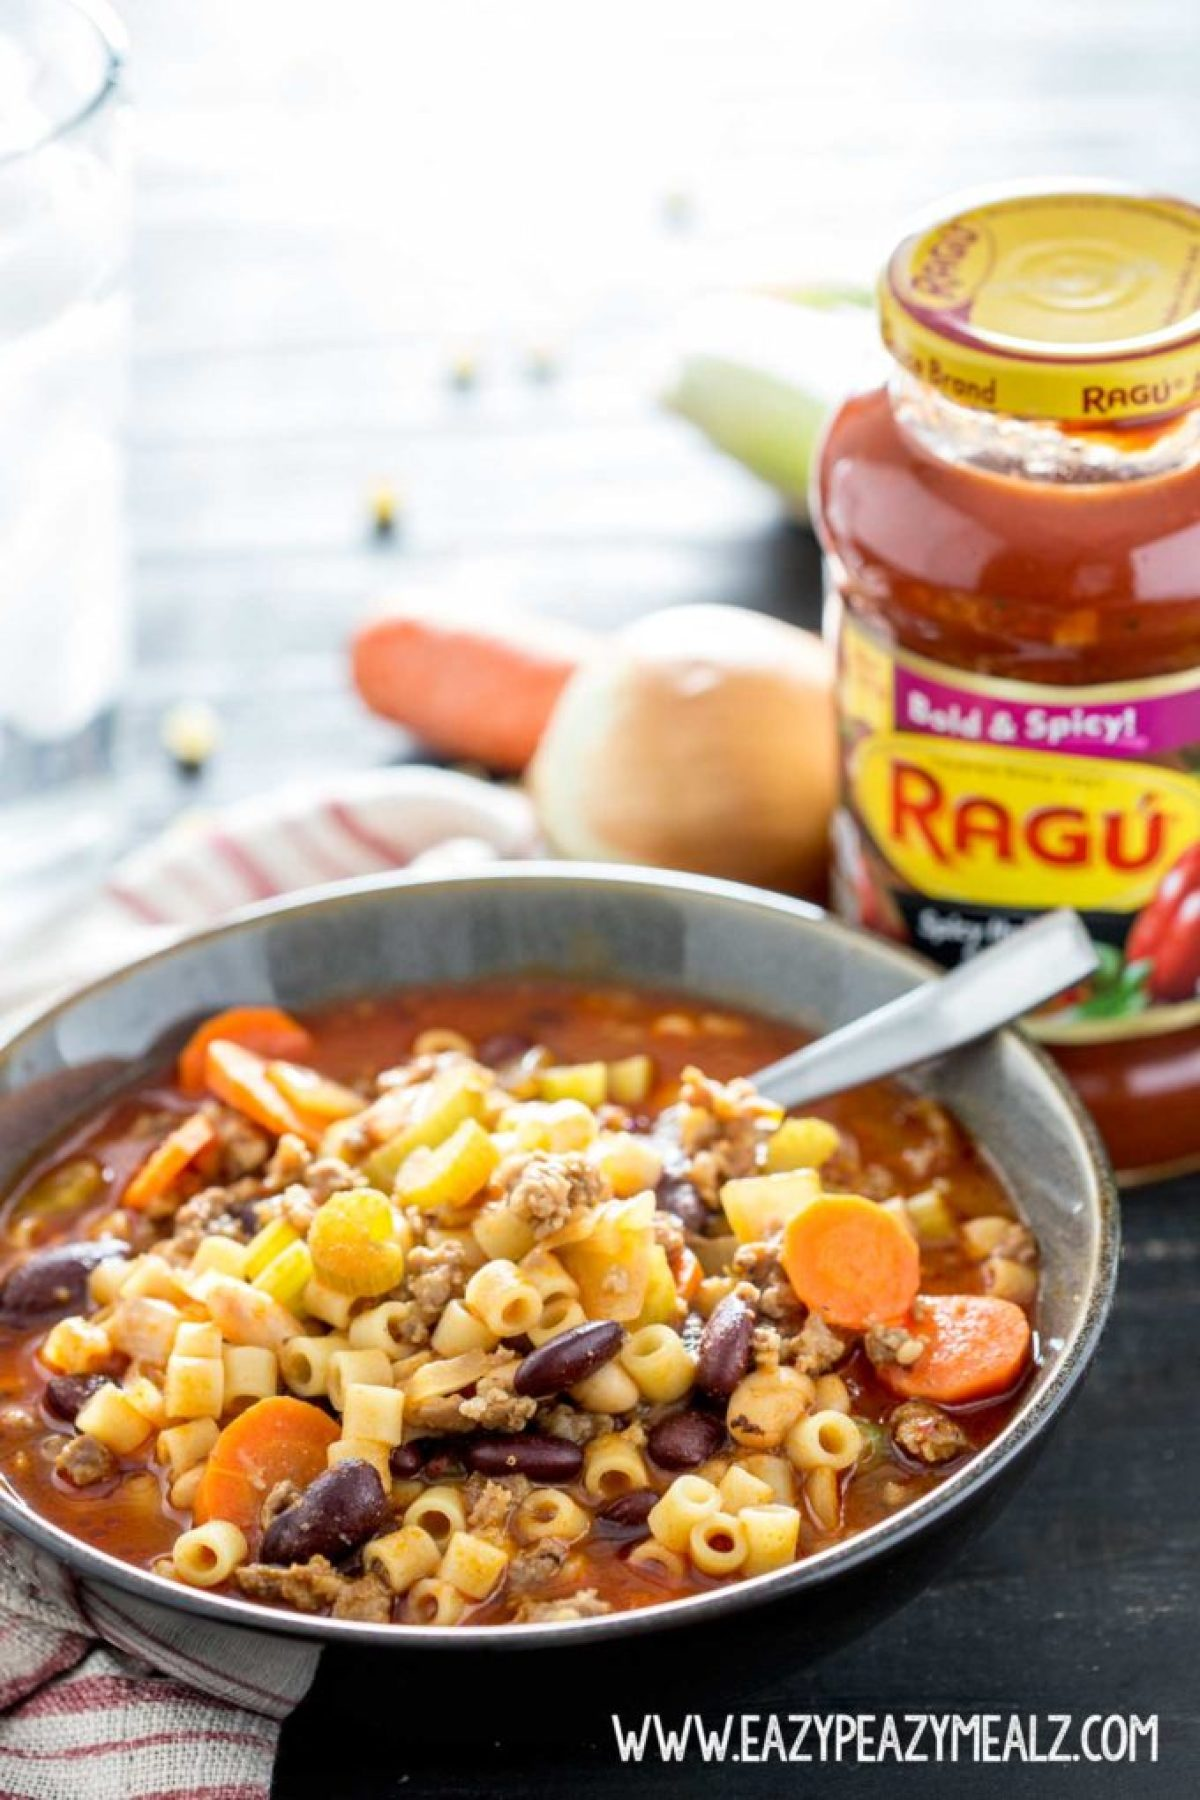 Pasta Fagioli Soup Olive Garden Recipe: This hearty, flavorful soup made from Italian Sausage, veggies, marinara base, pasta and beans can be on the table in under 30 minutes.